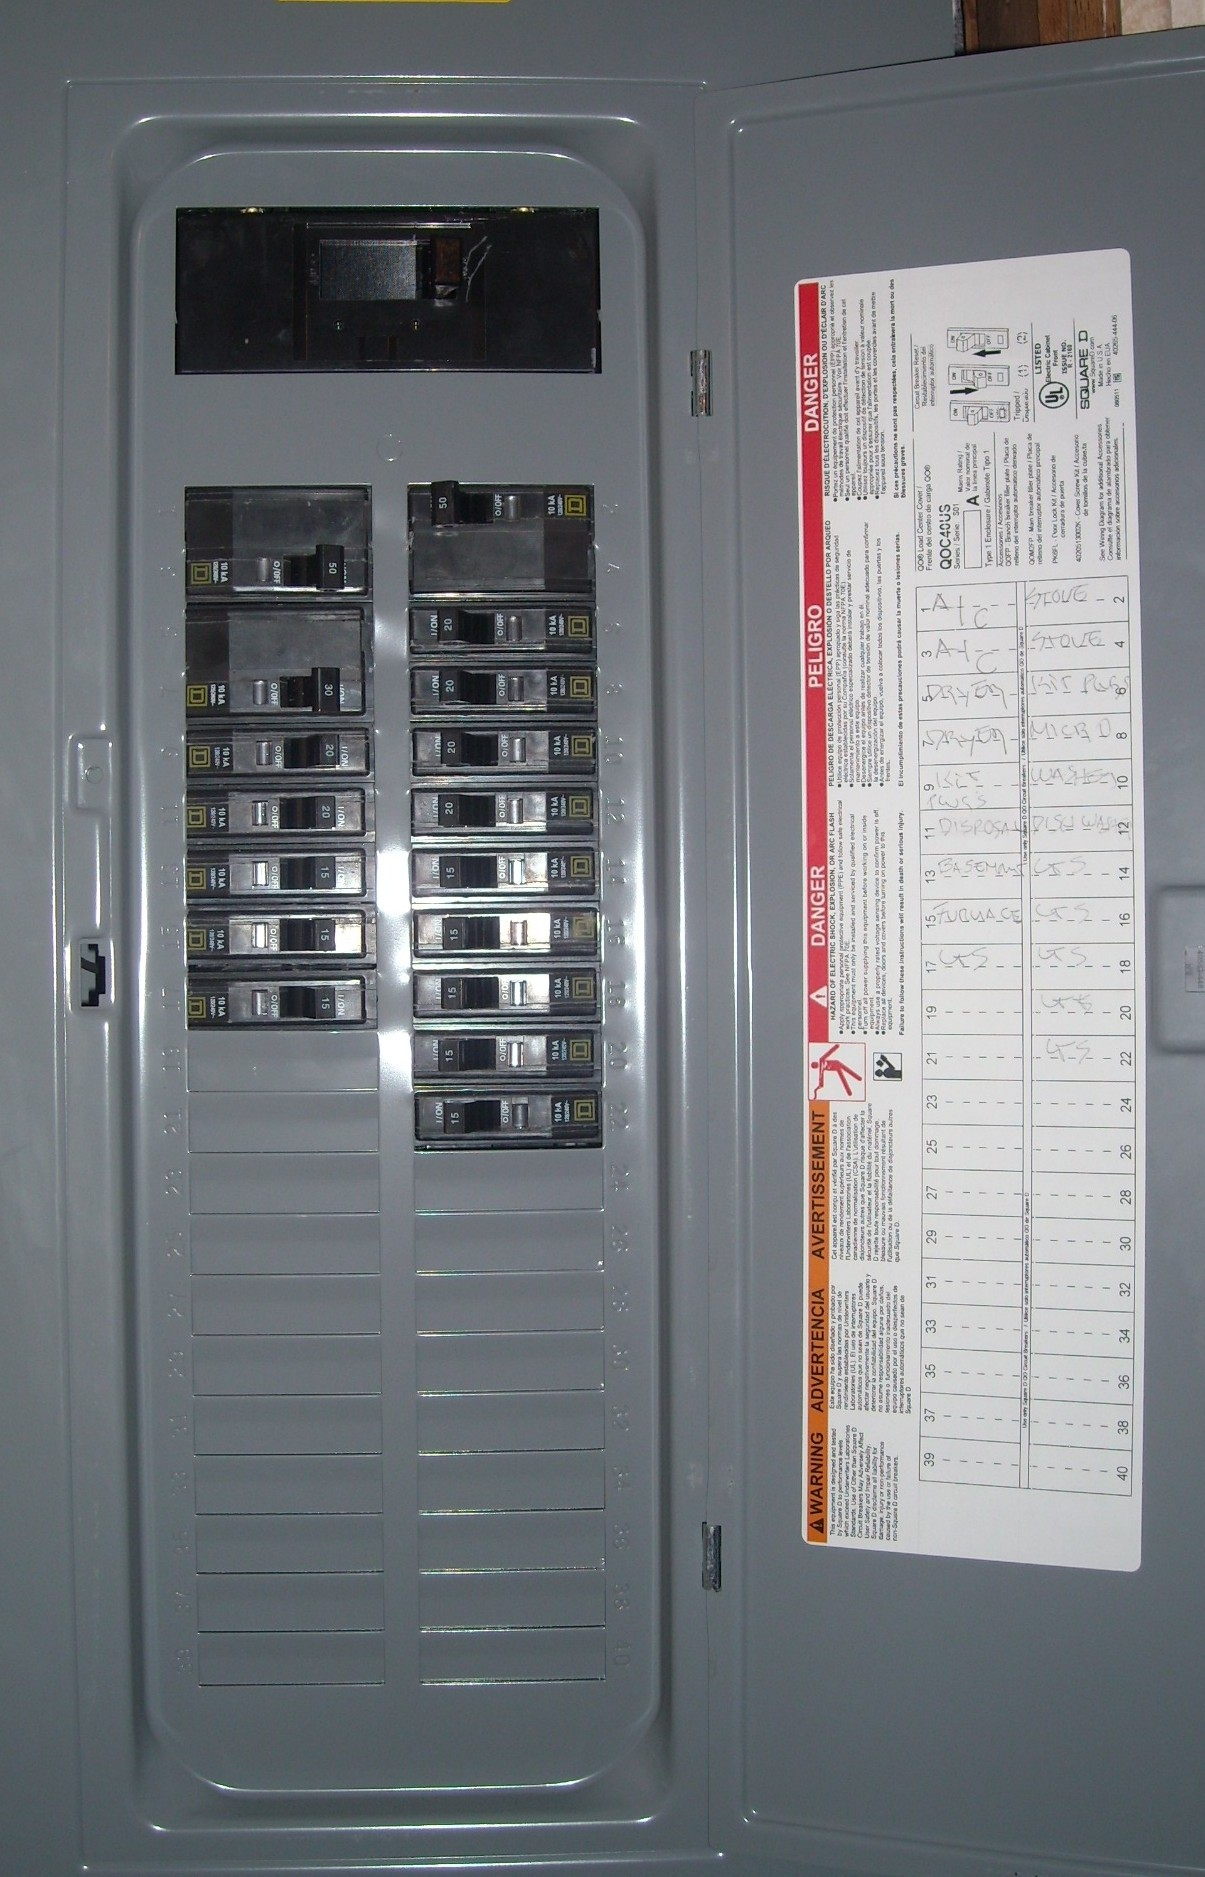 Hot Water Heater Fuse Box Wiring Diagram Data Pump